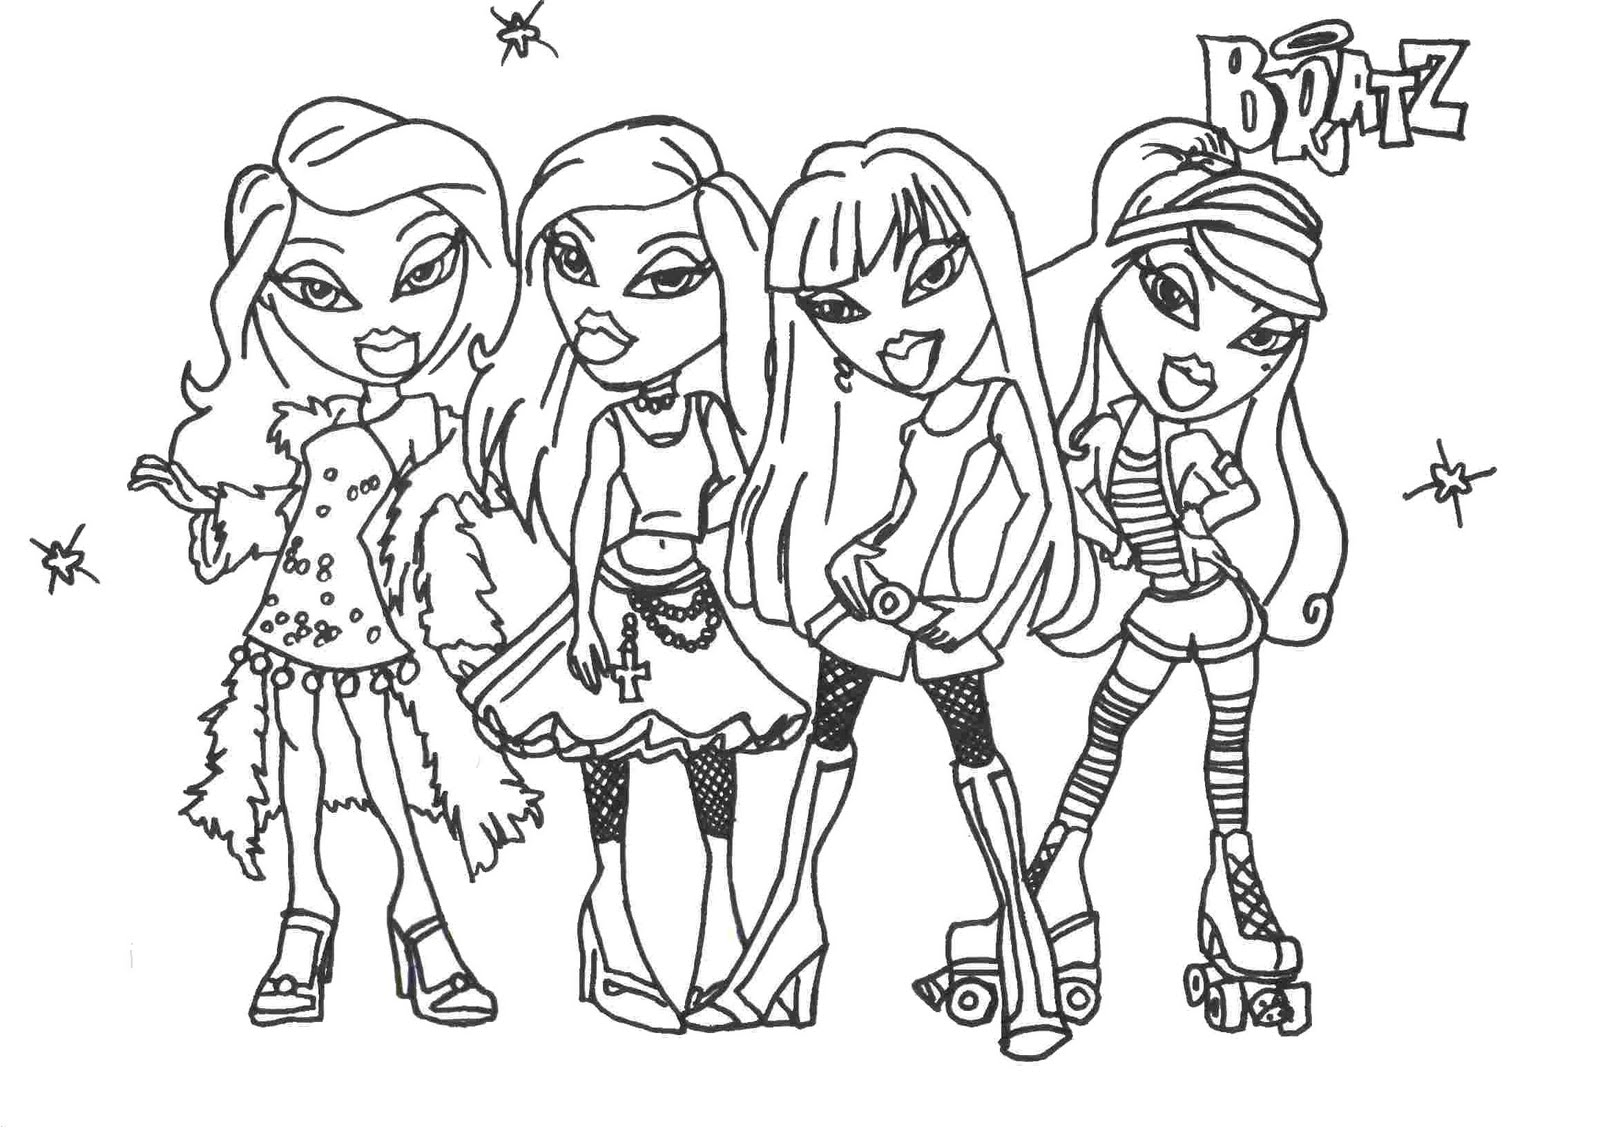 bratz doll coloring pages - bratz coloring pages to download and print for free